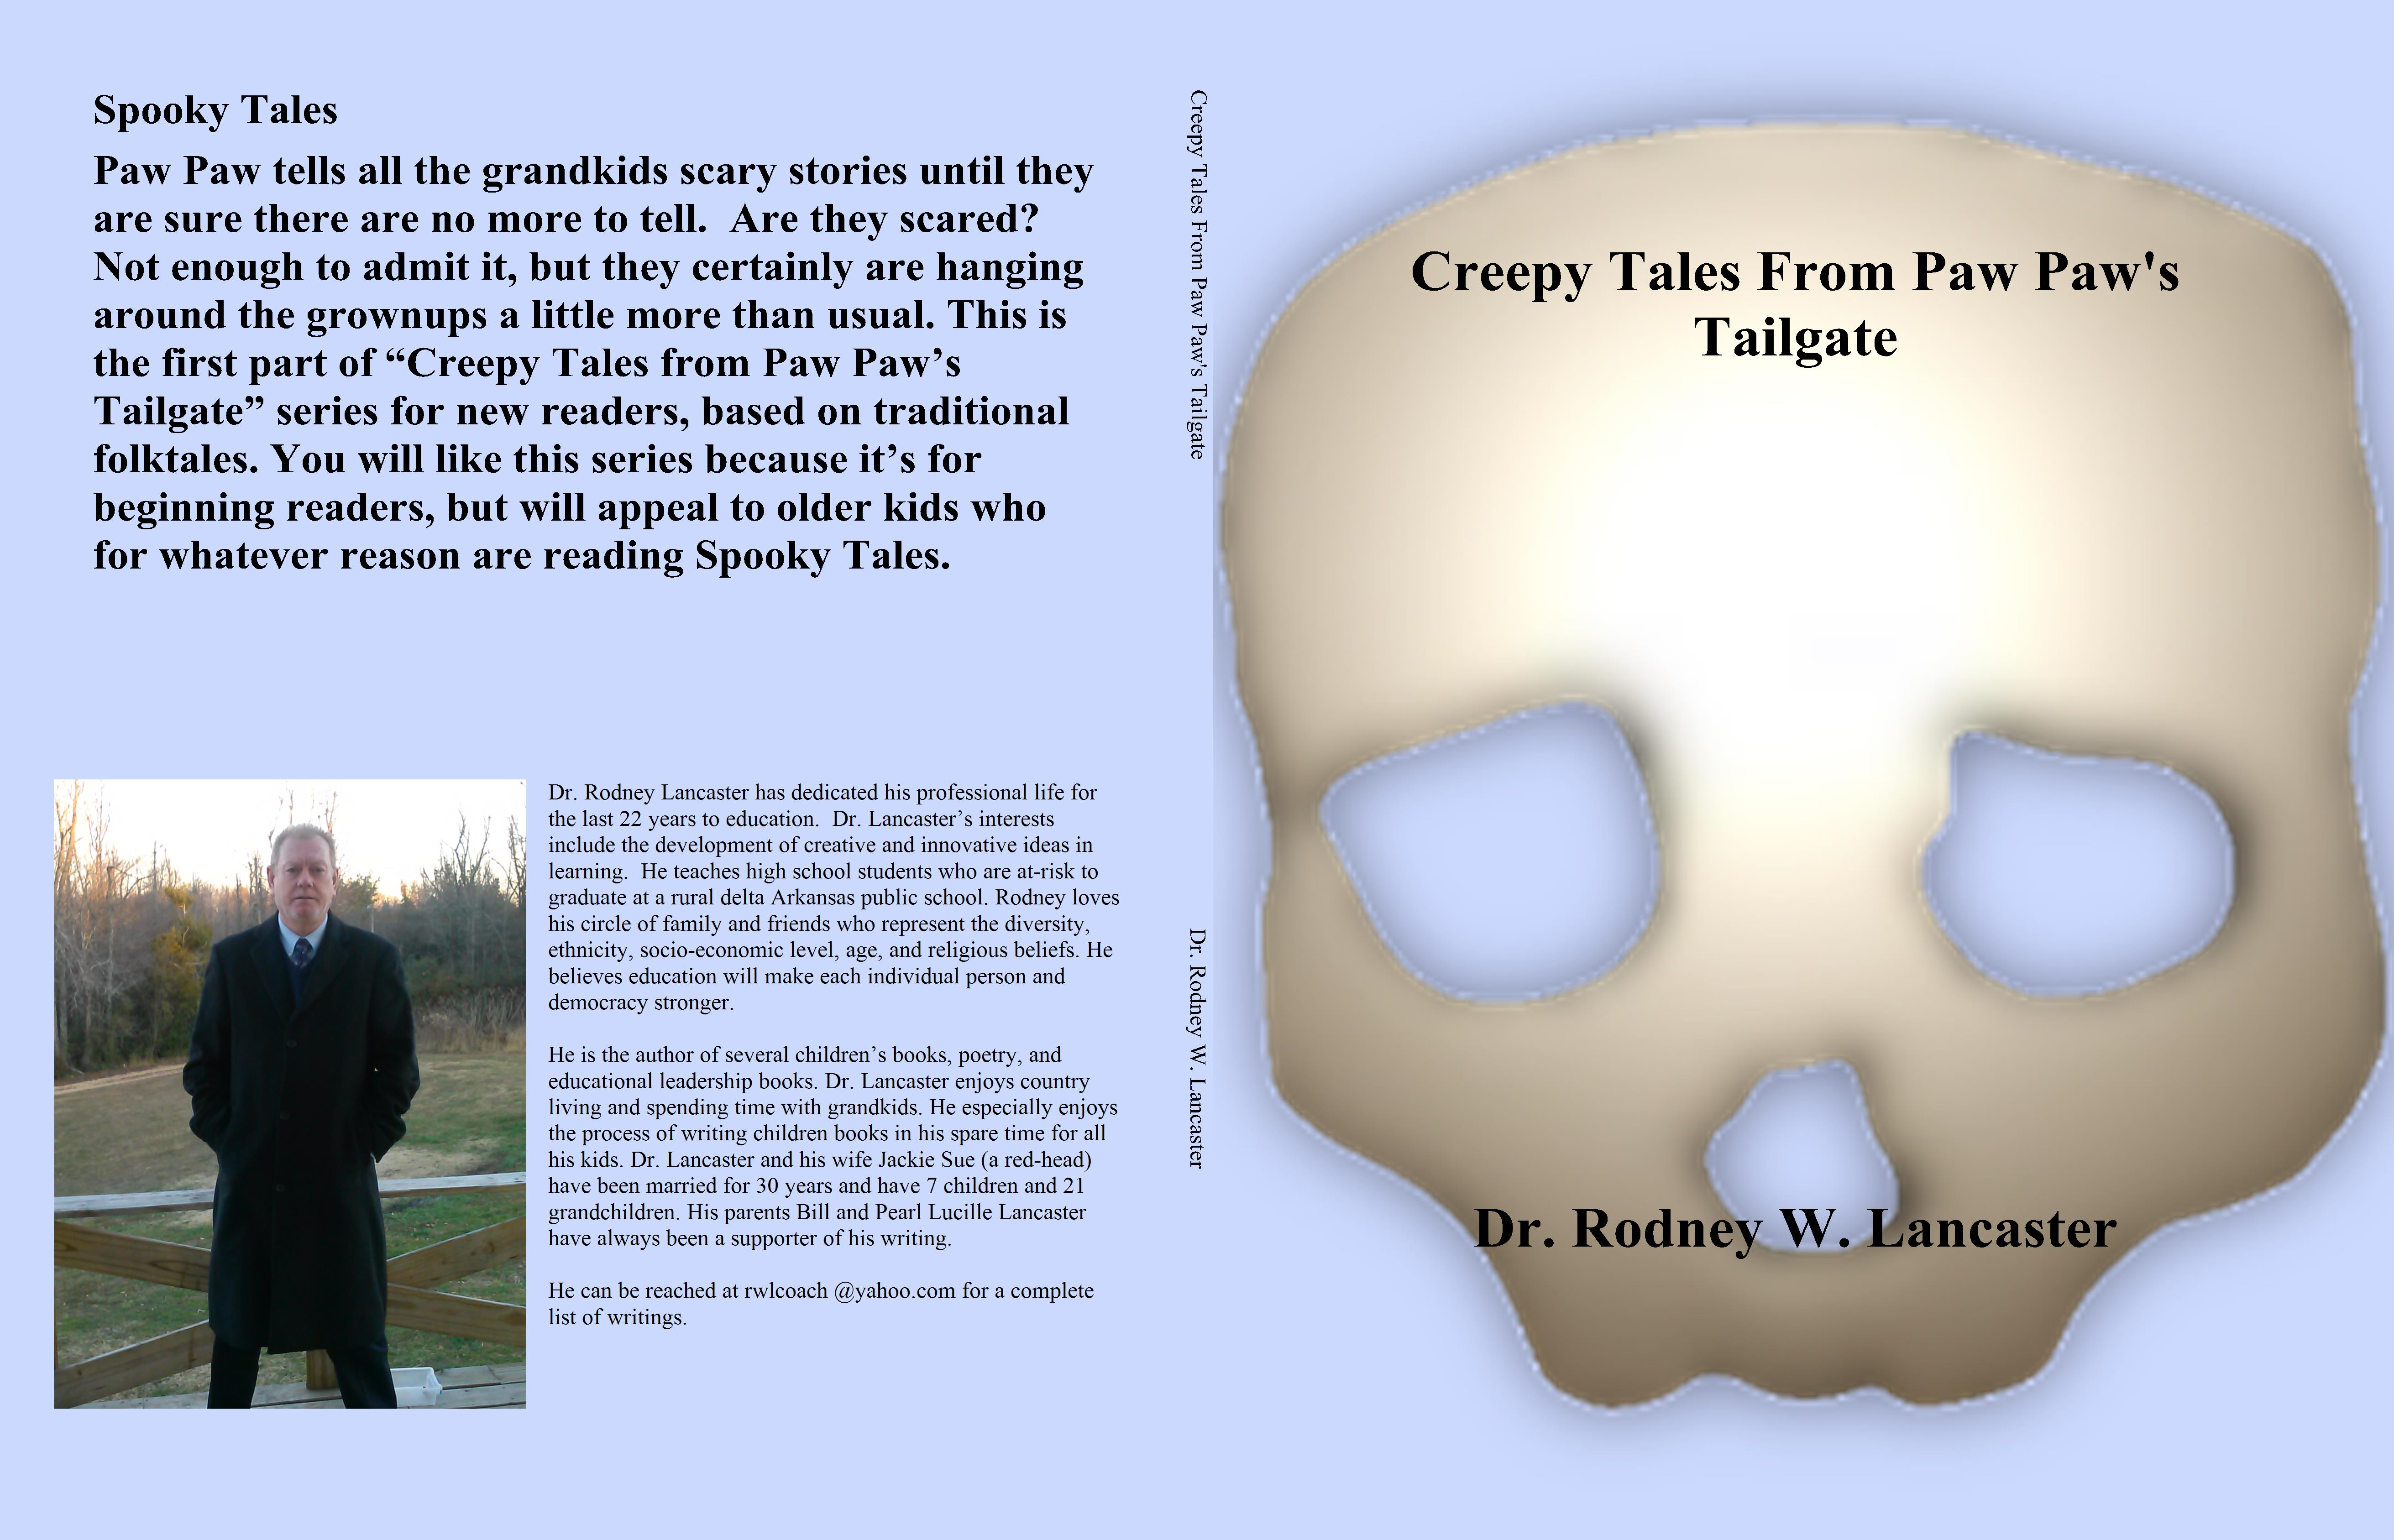 Creepy Tales From Paw Paw